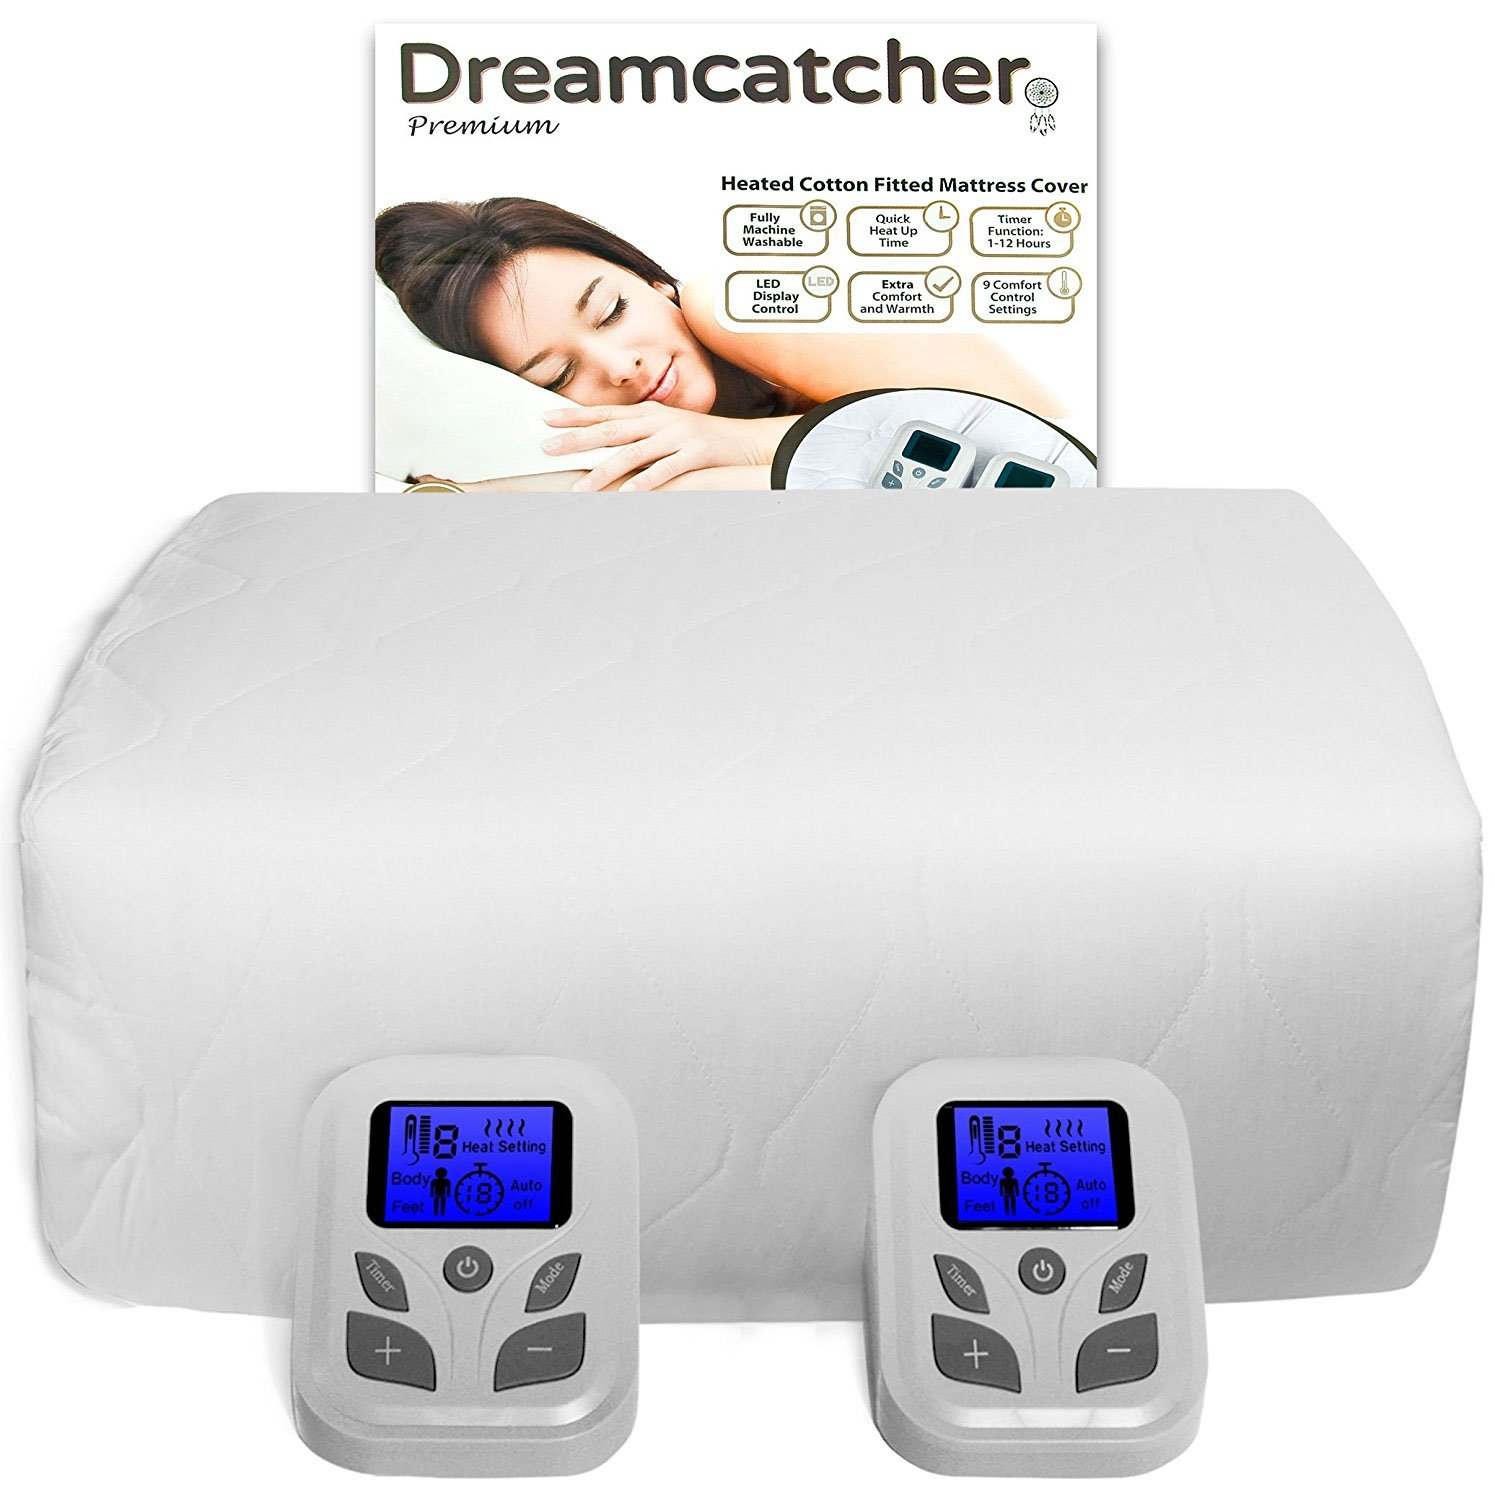 Double Electric Blanket Dual Control Double Bed Full Size 193 x 137cm Fully Fitted Heated Underblanket Elasticated Skirt With Bedside Timer, 9 Comfort Settings Machine Washable Body & Feet Heating Function 2 x Controllers (Ultra Deluxe Cotton) Dreamca